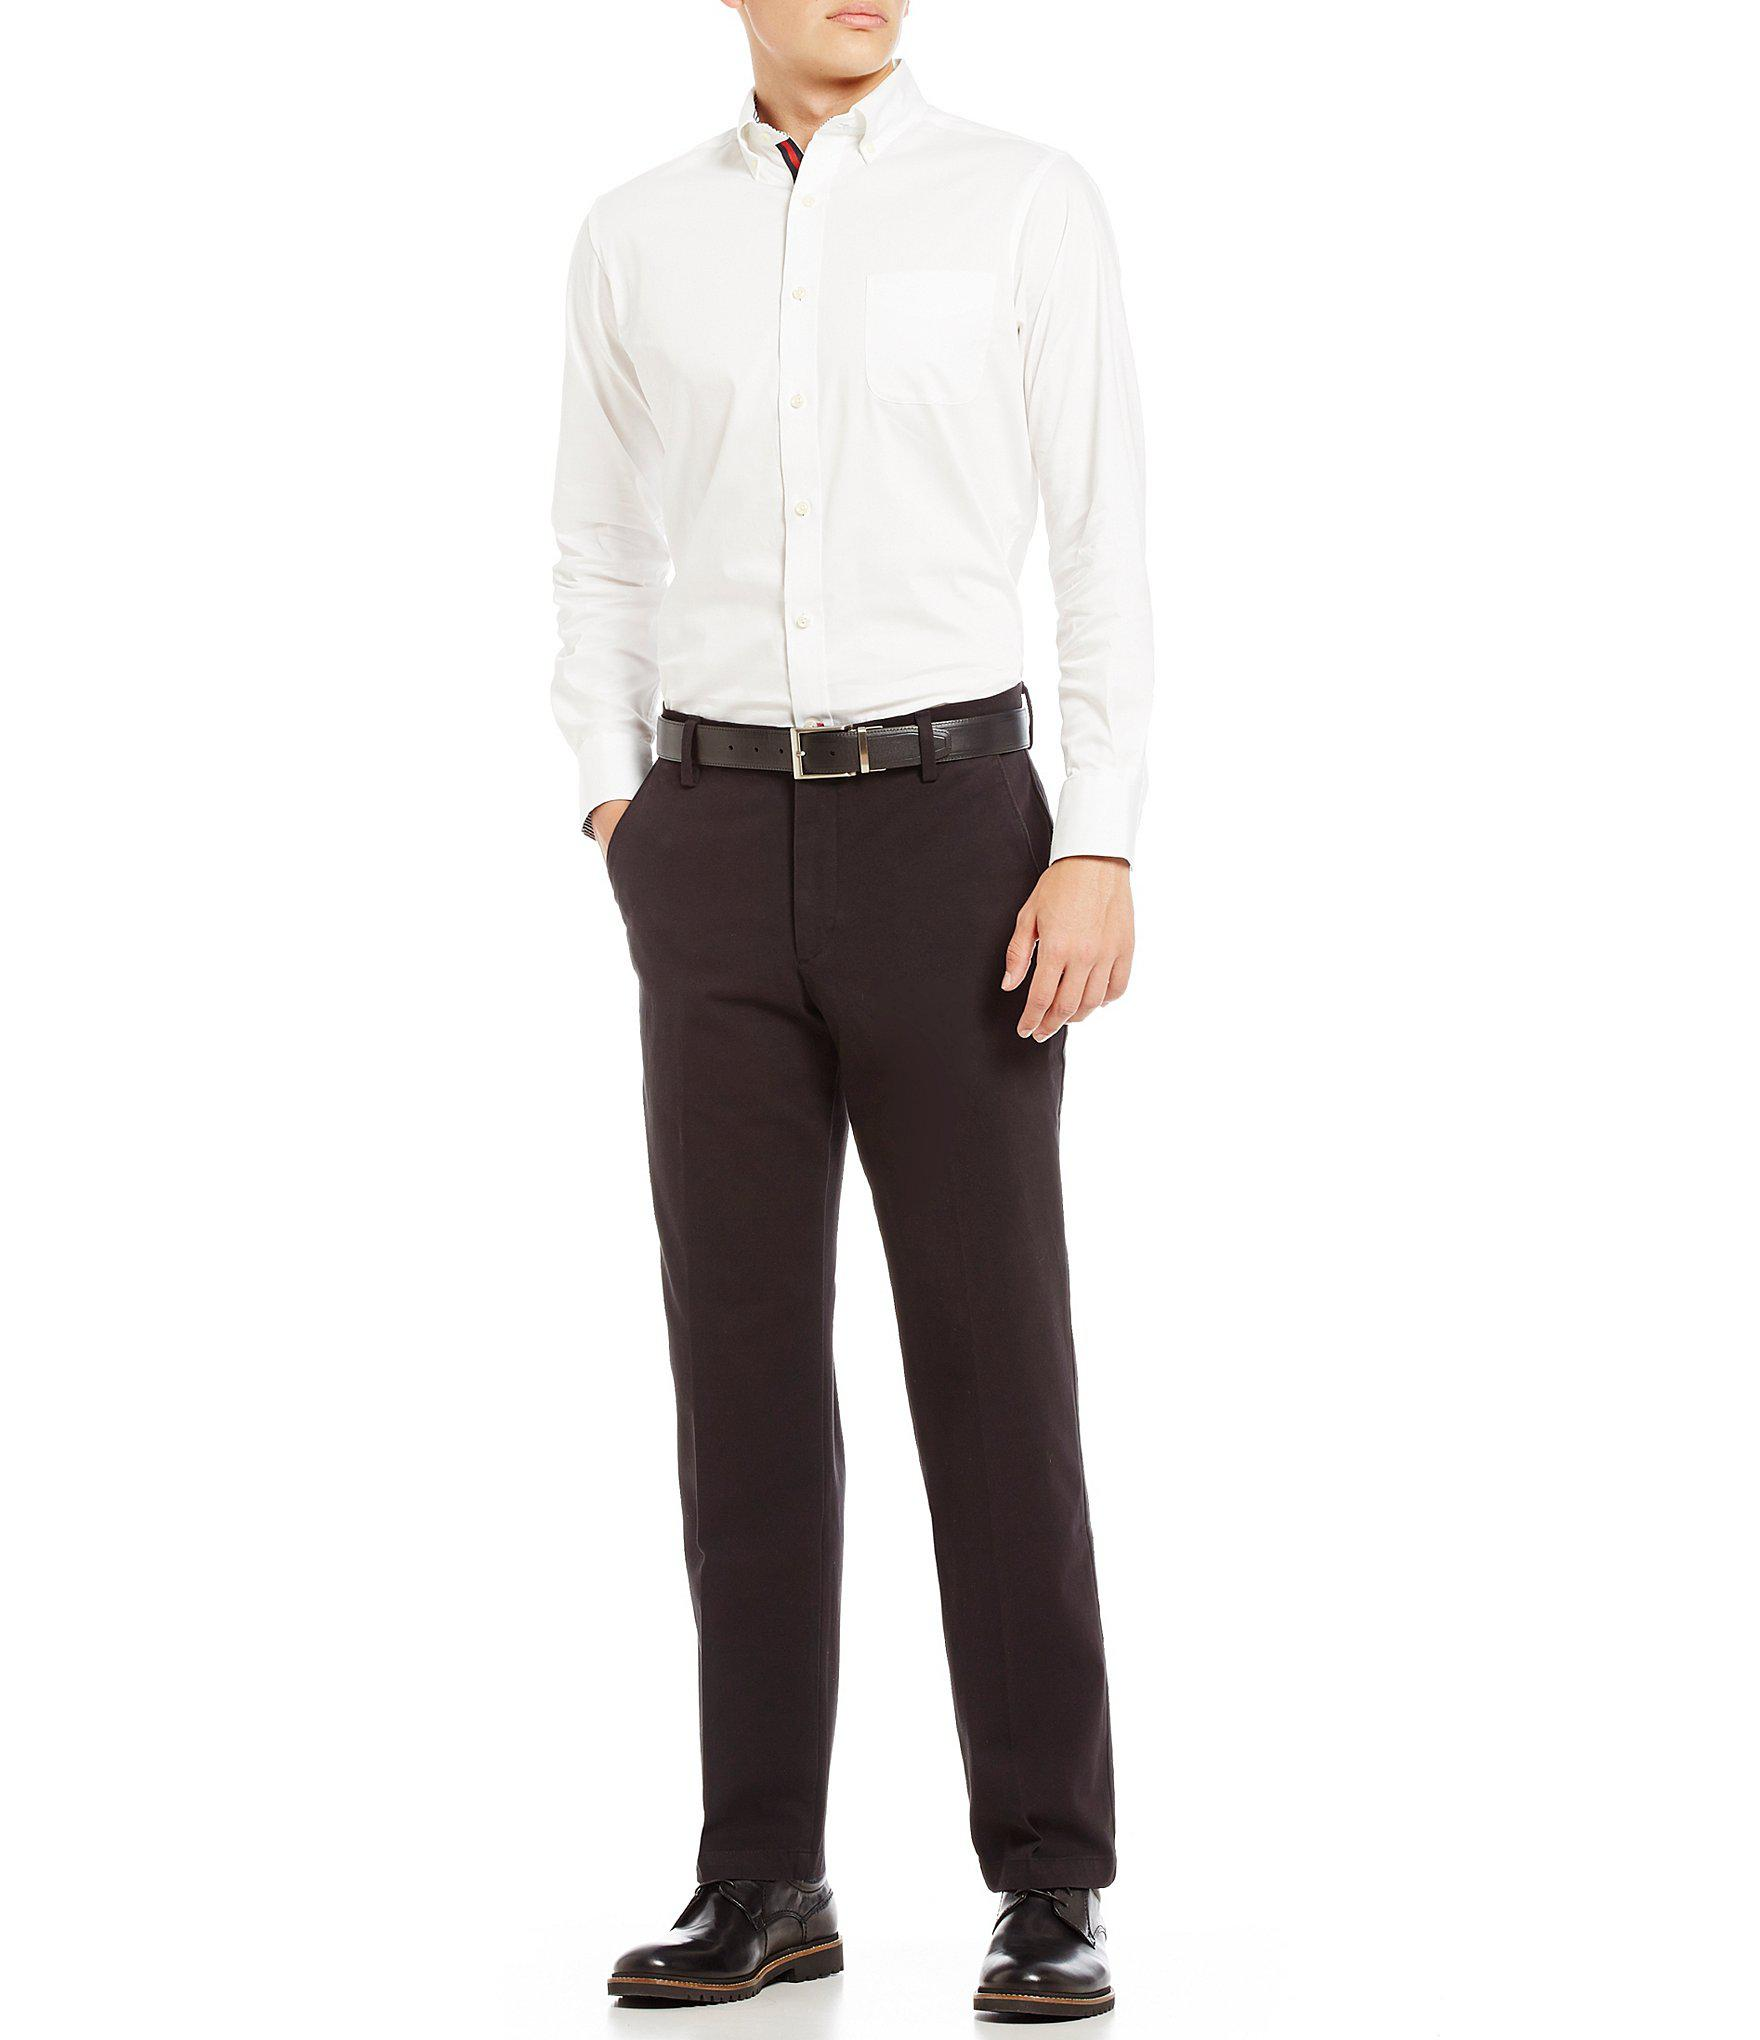 90bbb46110f22d Tap to visit site. Dockers - Natural Docker's 360 Flex Waistband Refined  Straight Fit Chino Flat Front Pants for Men